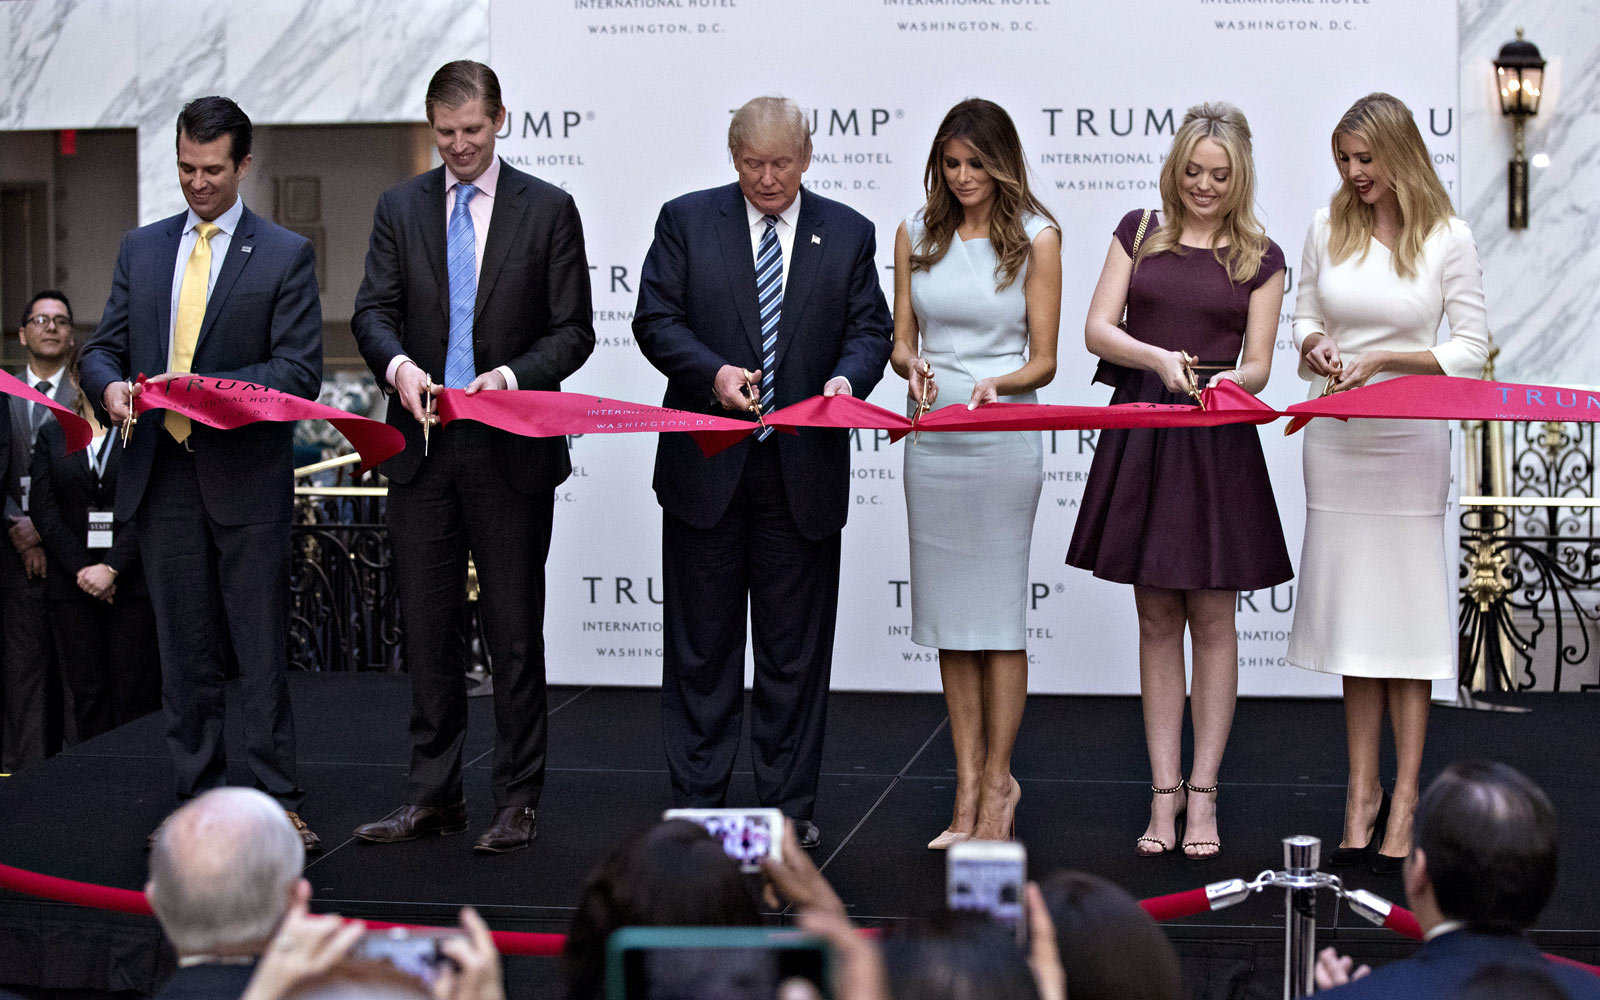 Trump DC International Hotel Grand Opening